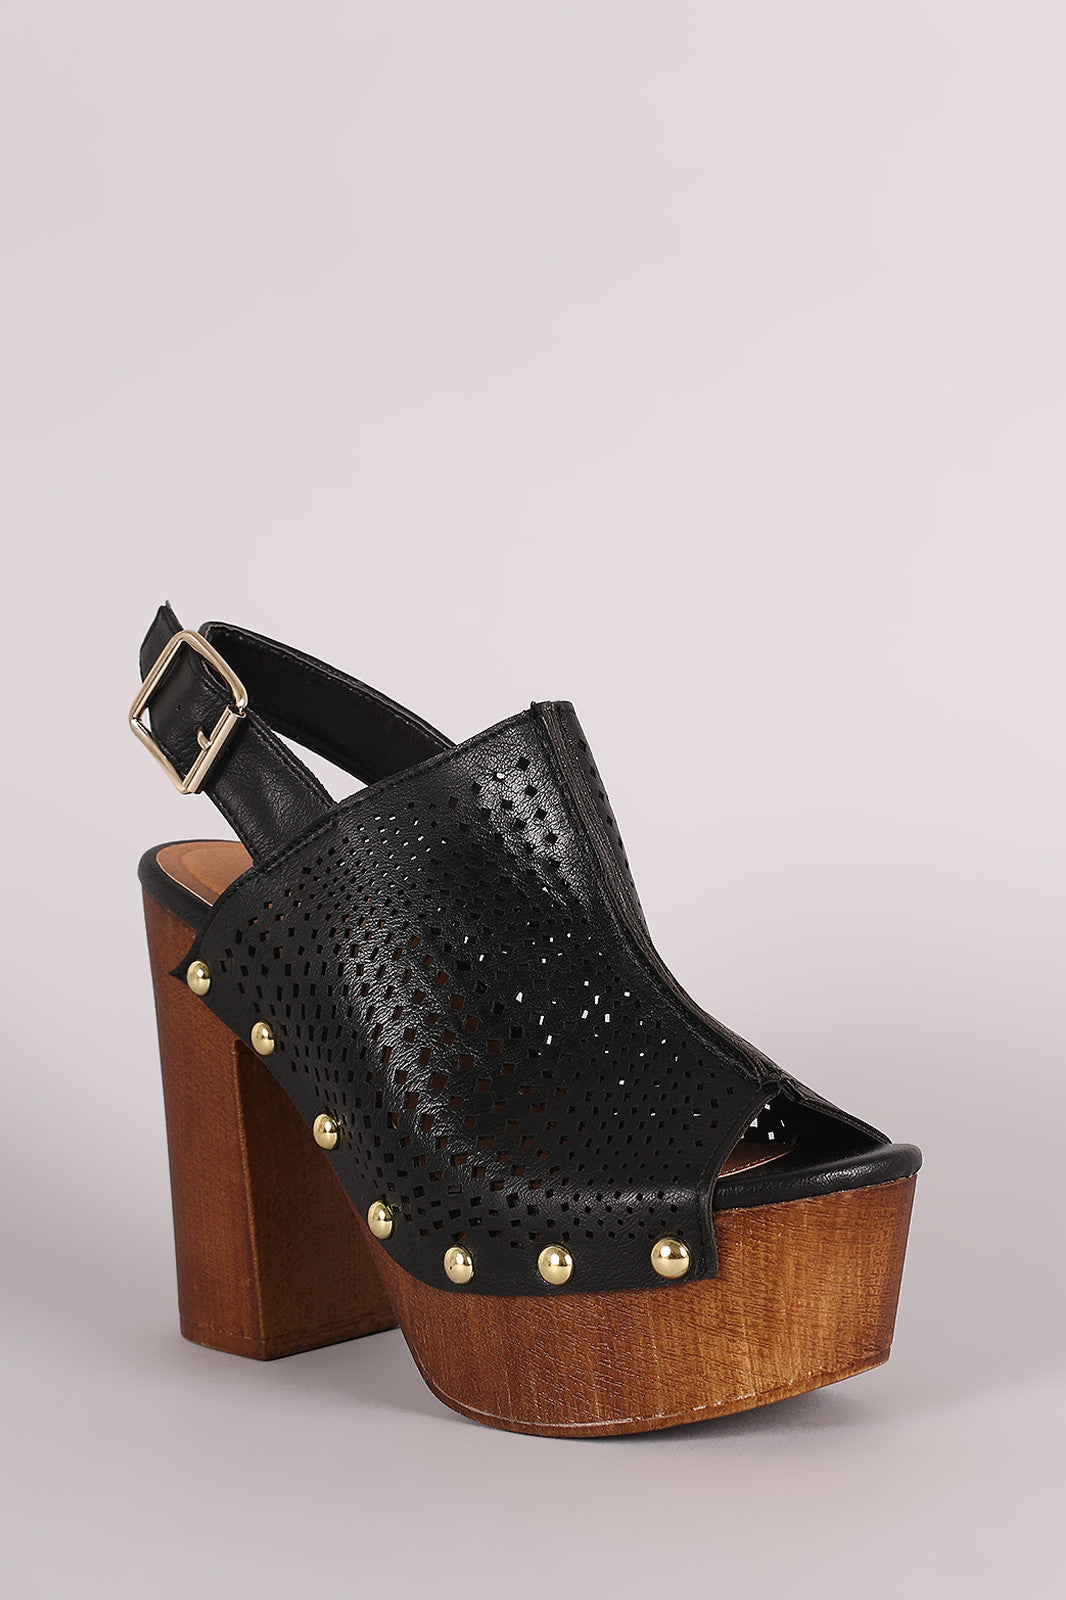 Qupid Perforated Slingback Studded Chunky Platform Mule Heel - Thick 'N' Curvy Shop - 8